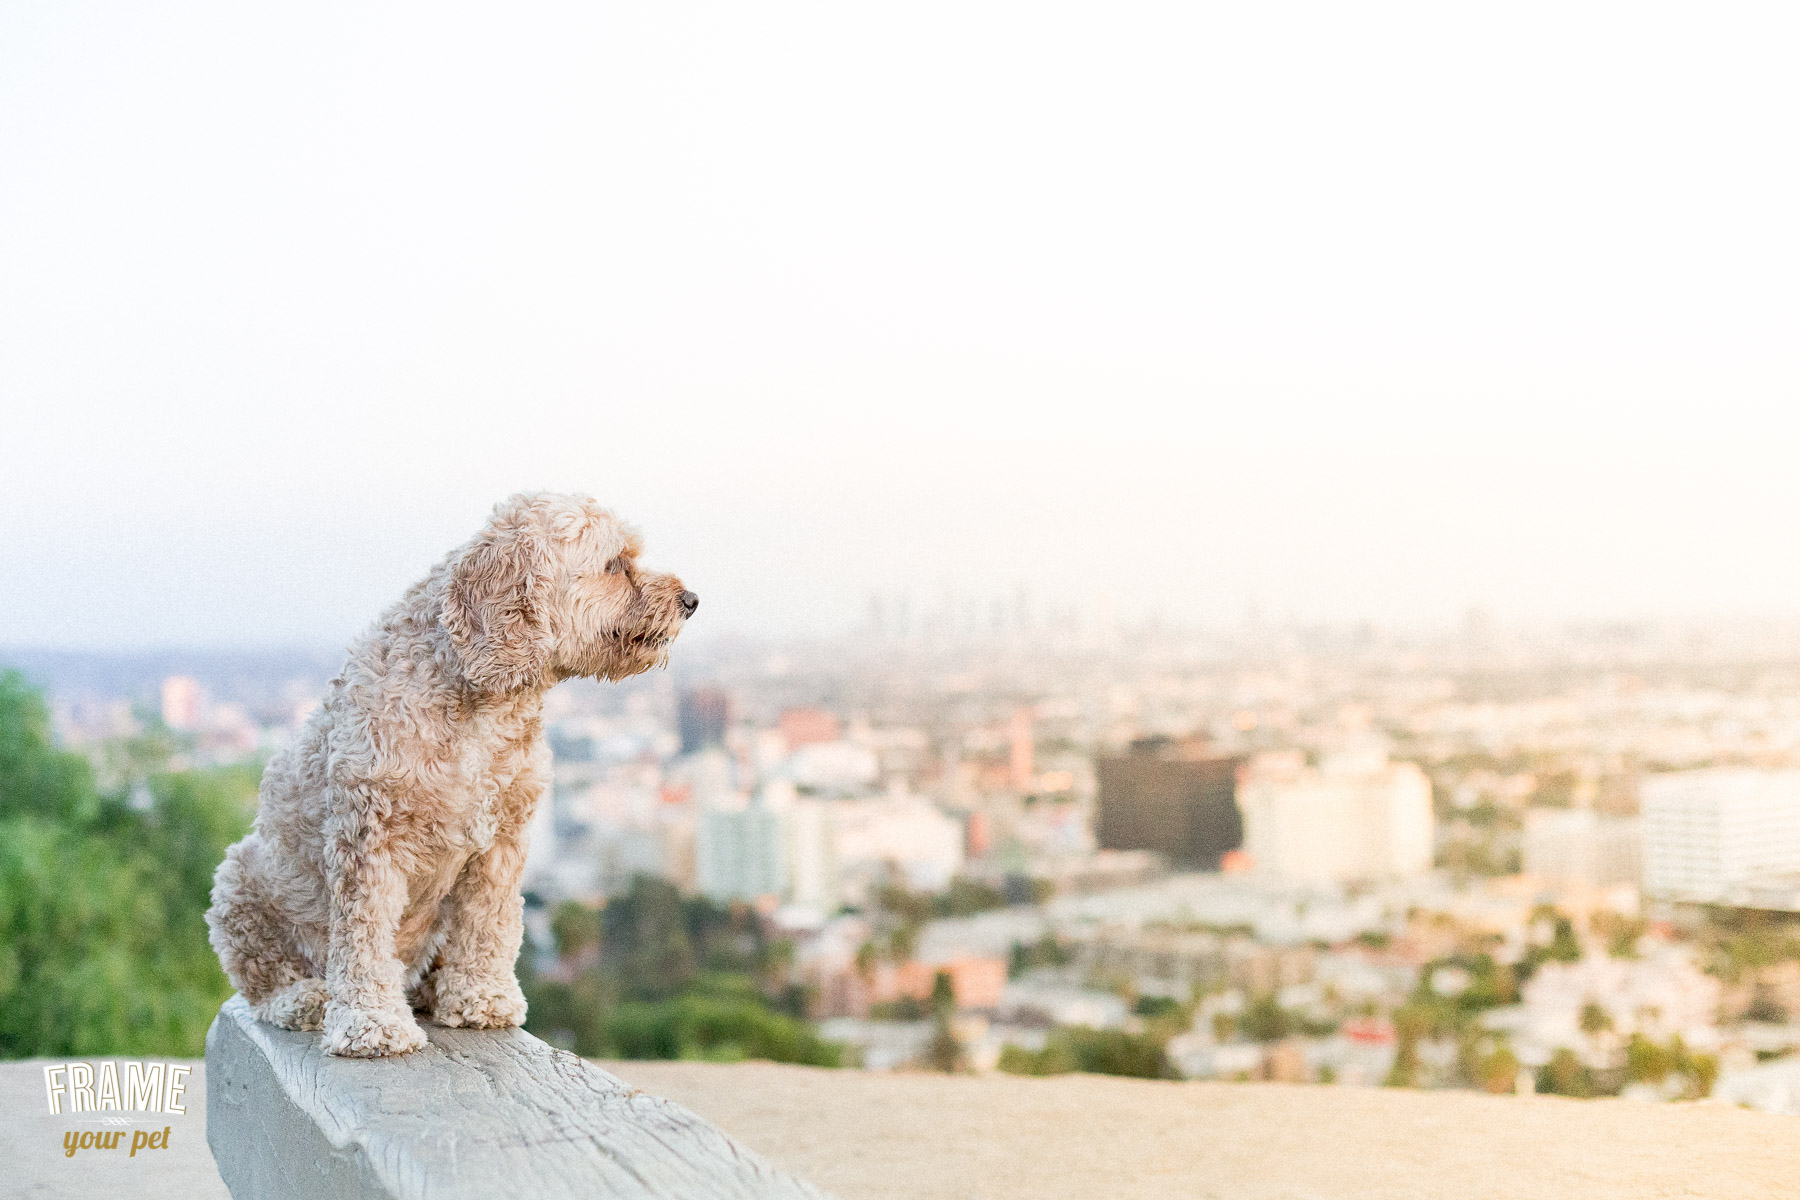 Porter enjoying the stunning views of Los Angeles city from the top.